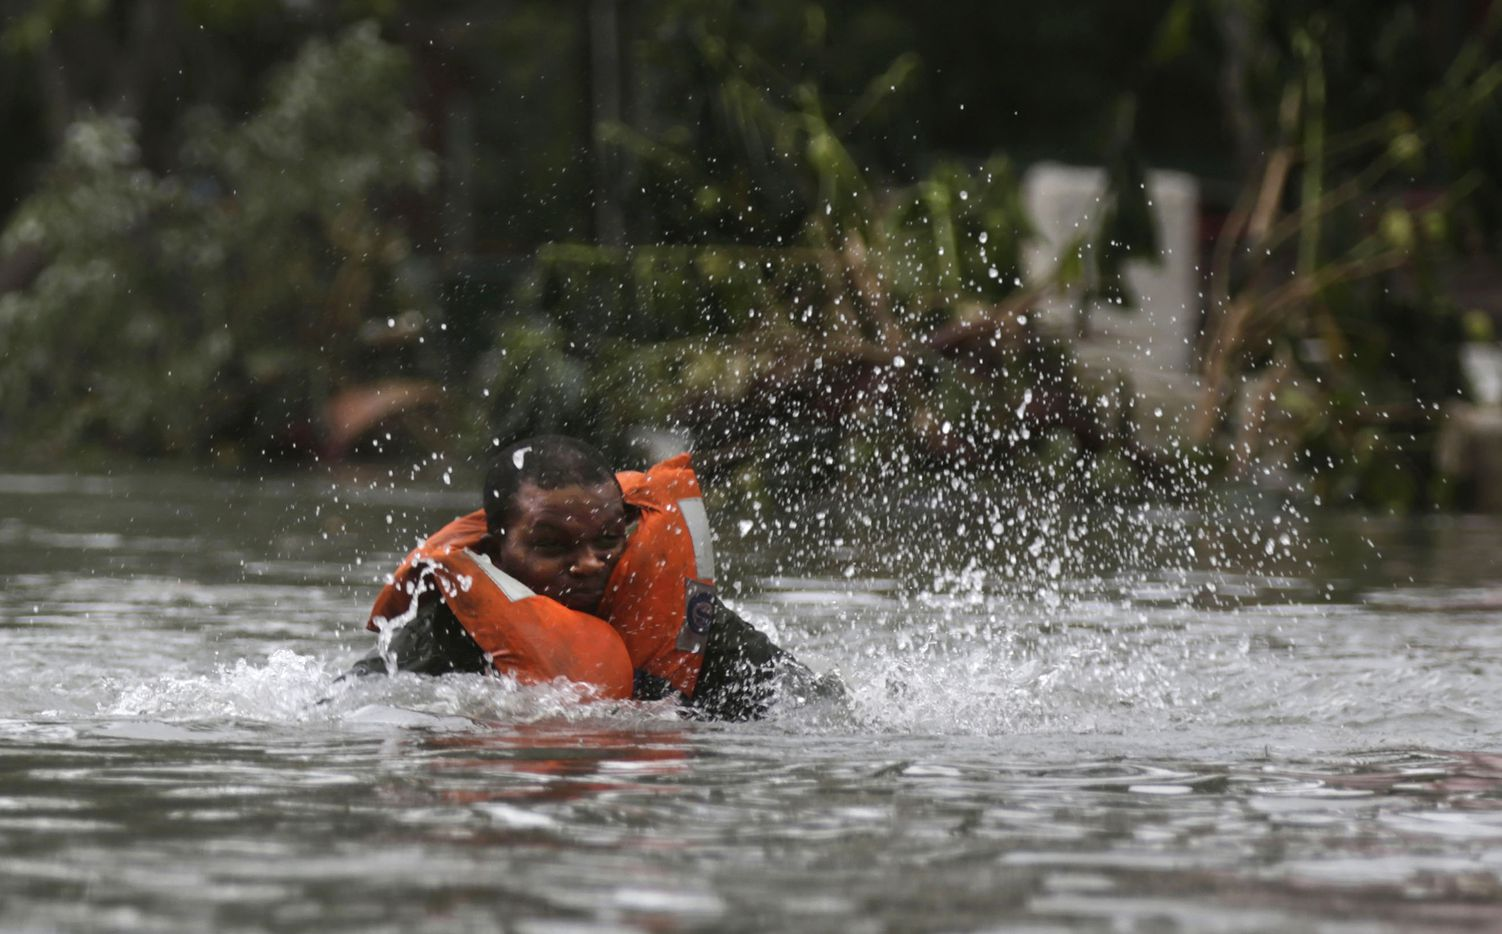 A rescuer falls into a flooded street in Havana, after the passing of Hurricane Irma in Cuba, Sunday, Sept. 10, 2017.